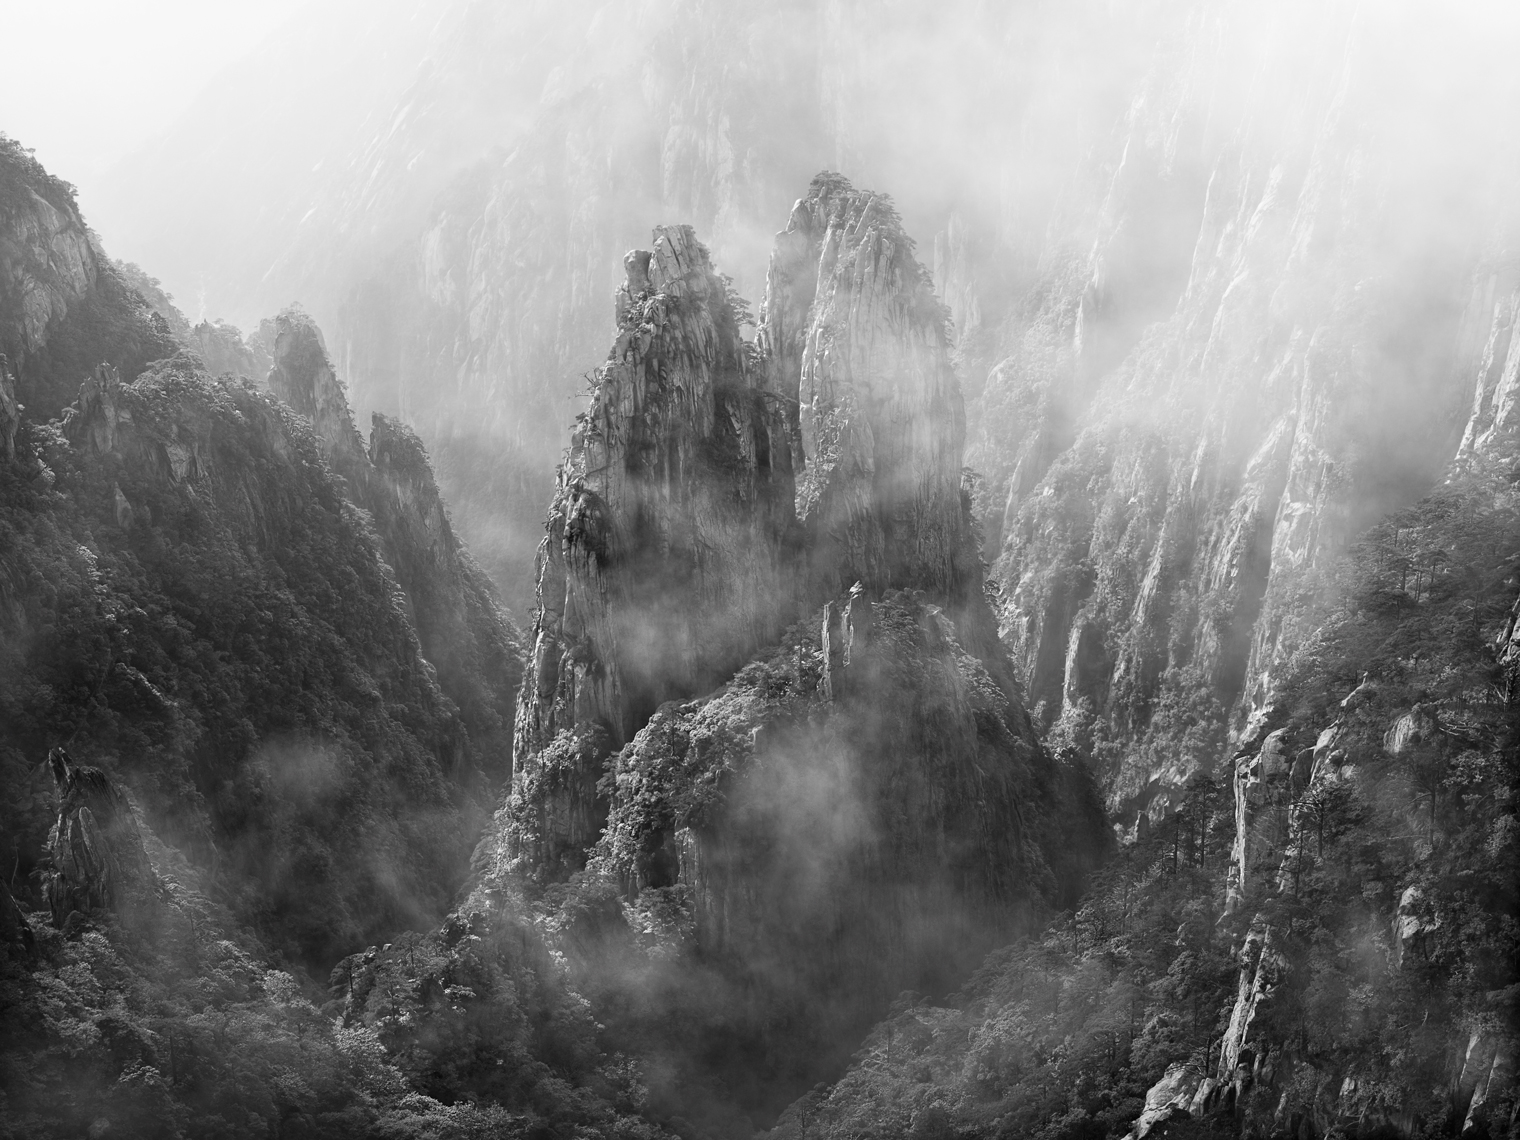 Jon Wyatt Photography - Huangshan mountains in mist, Anhui Province, China